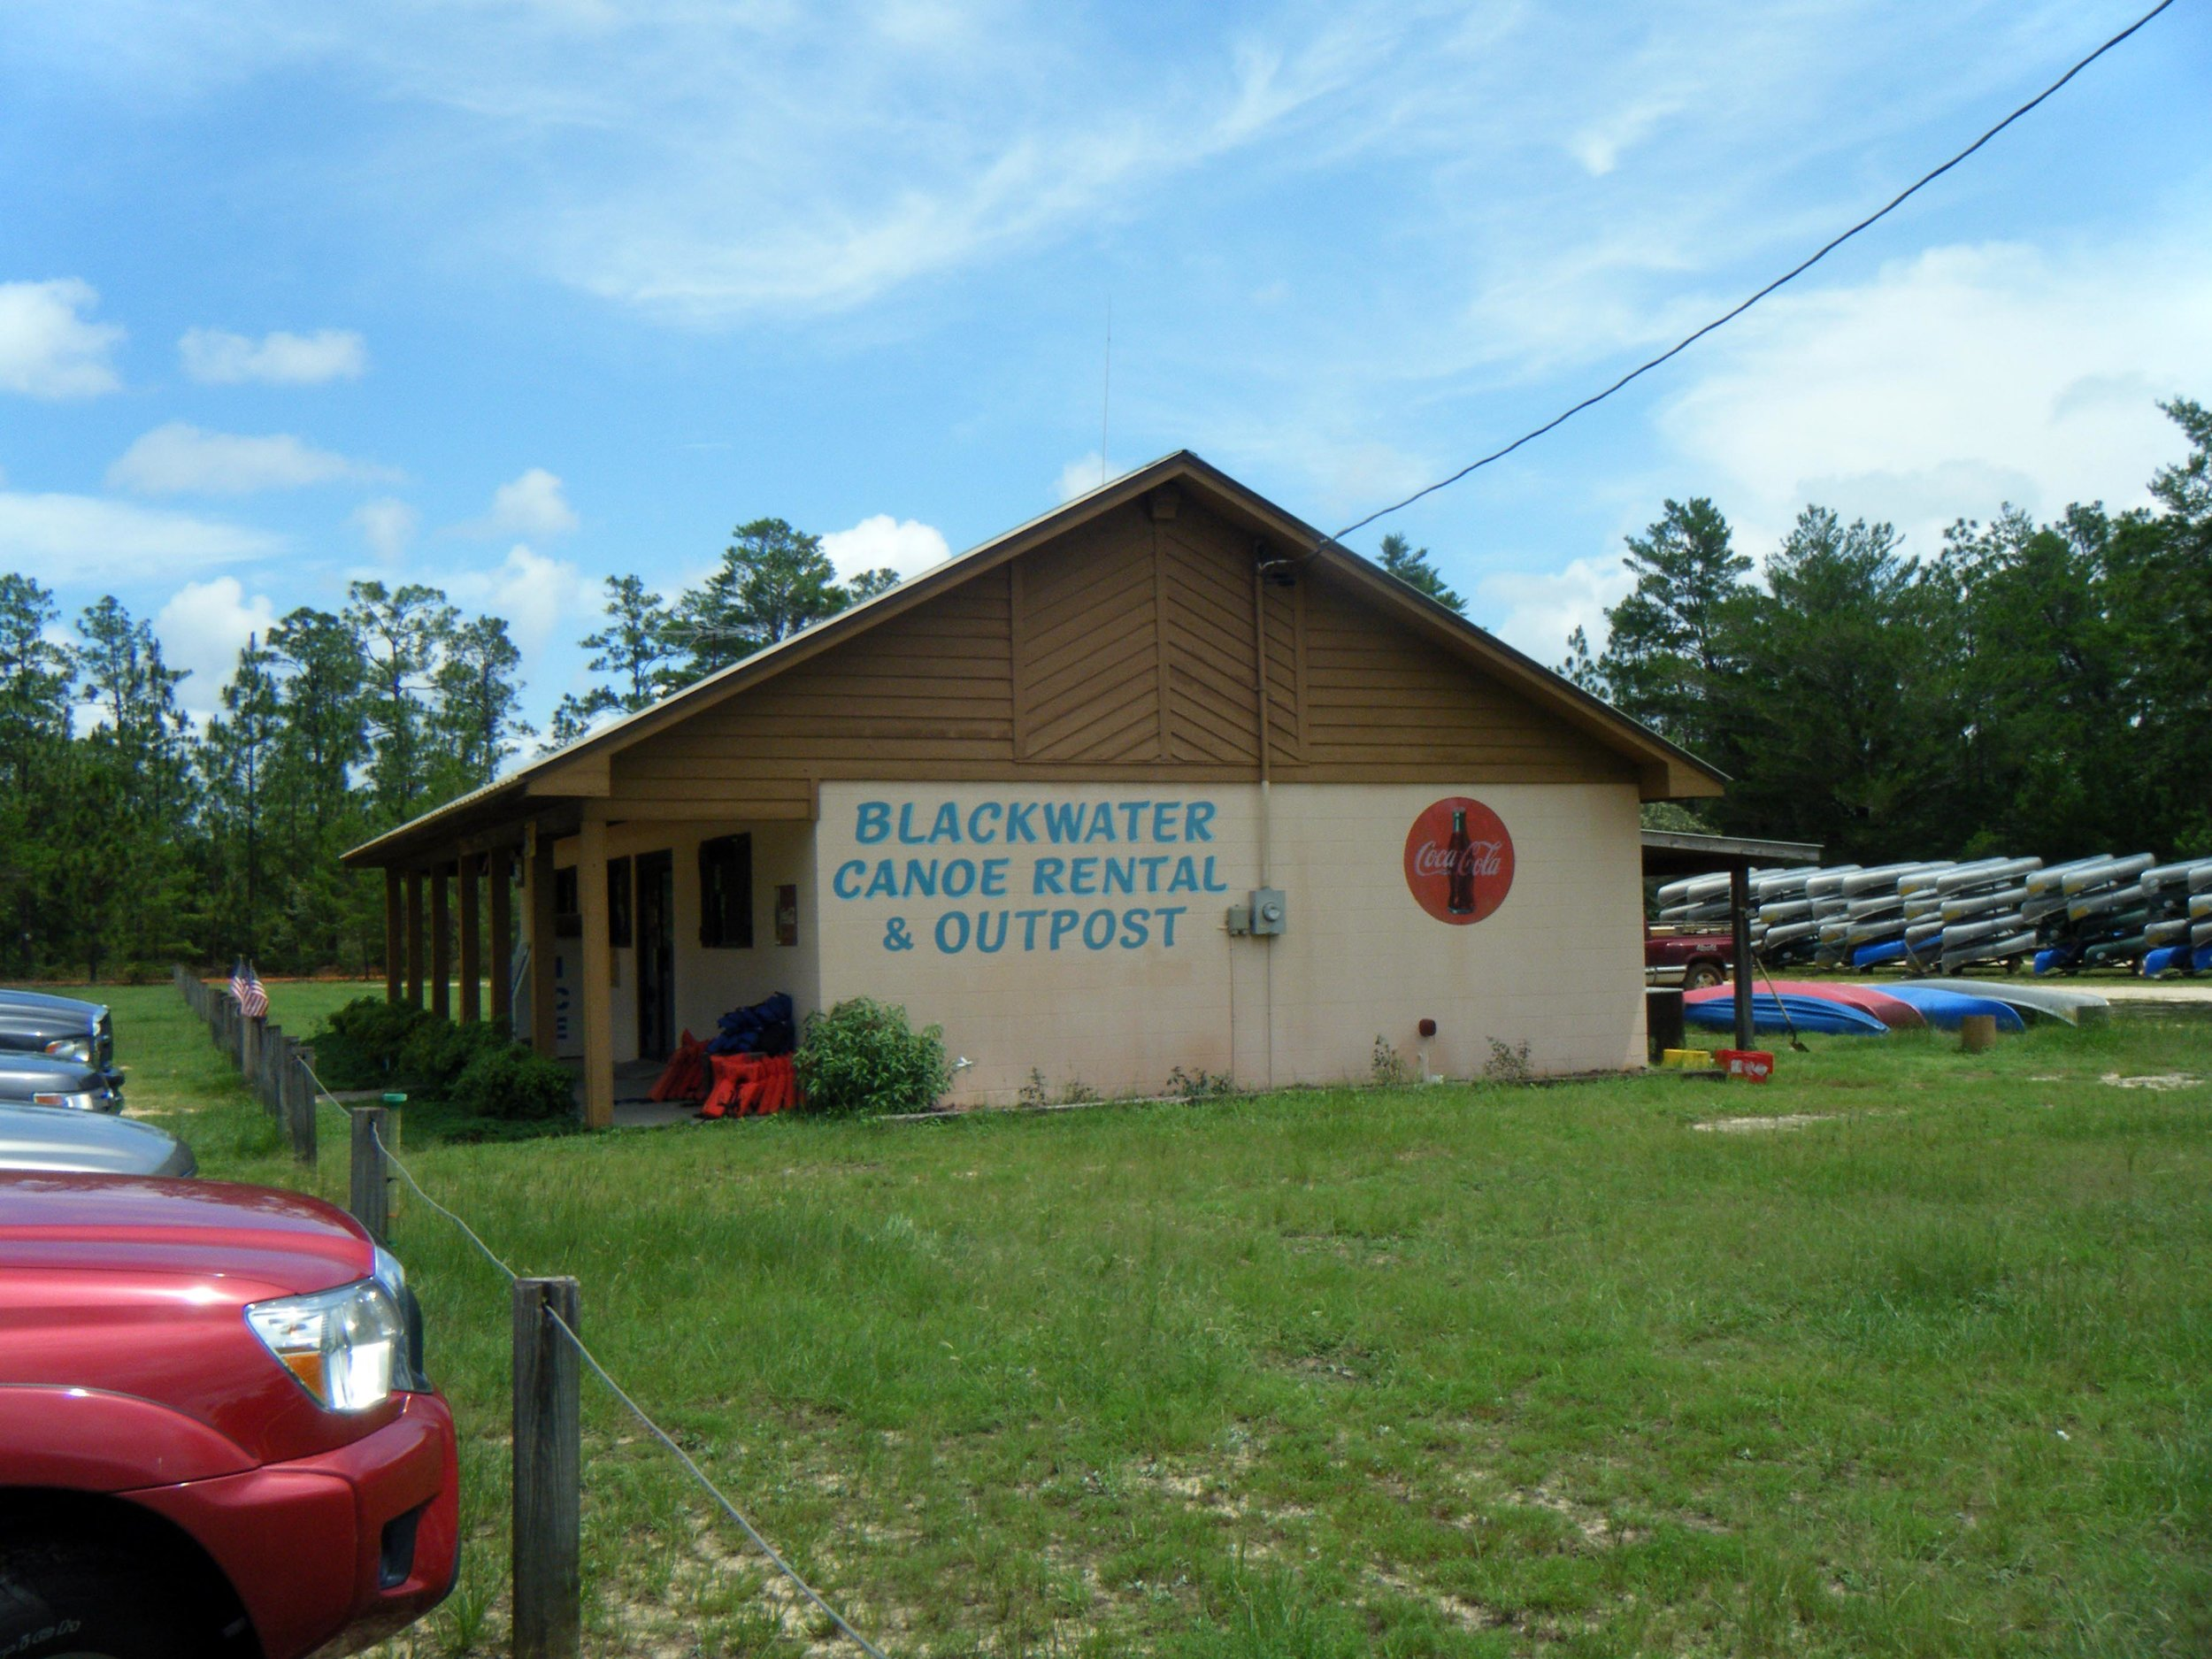 Blackwater Canoe Rental.jpg